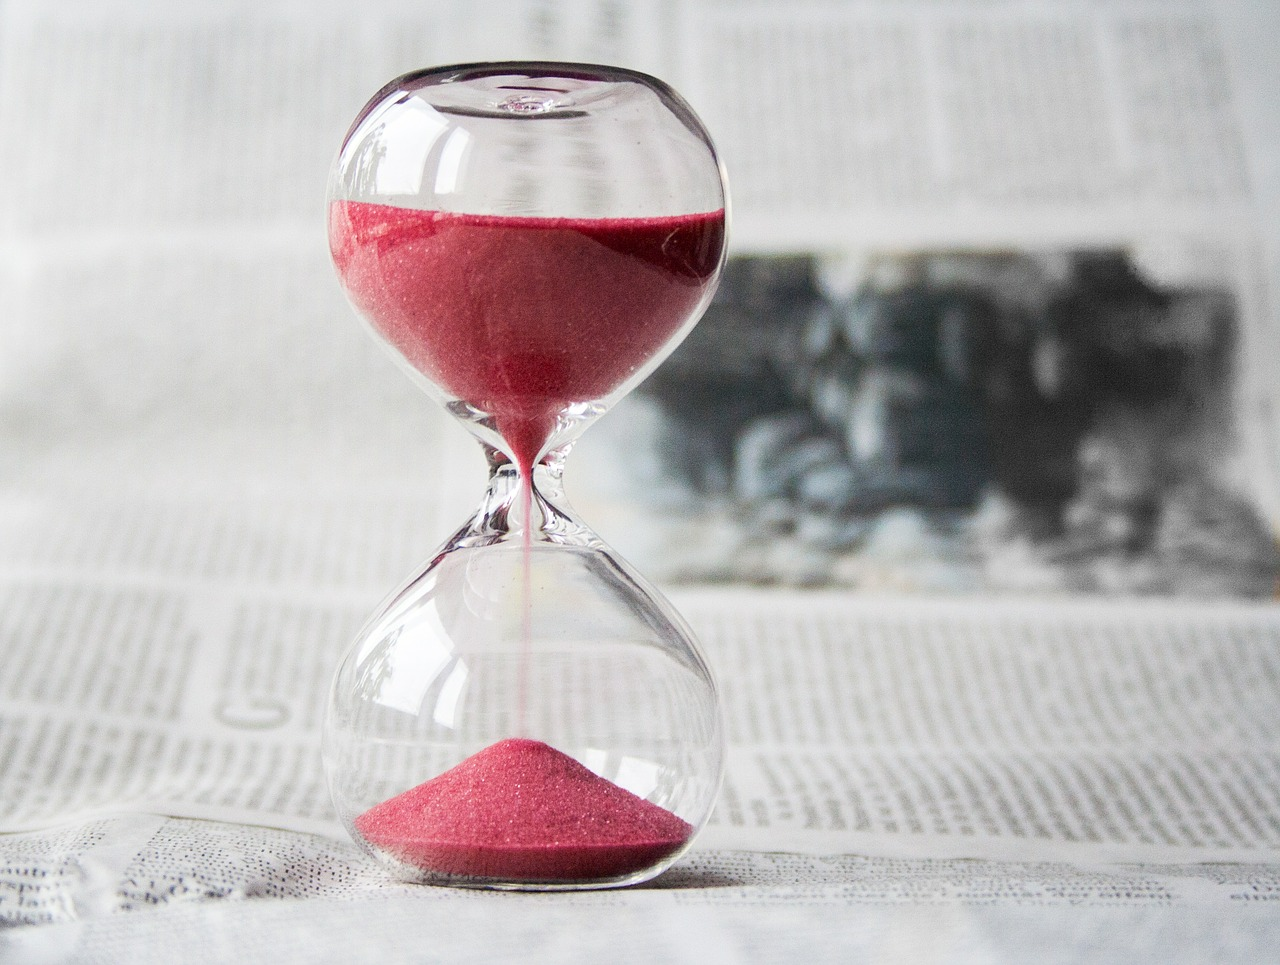 Hourglass with red sand; shows links between time and money.